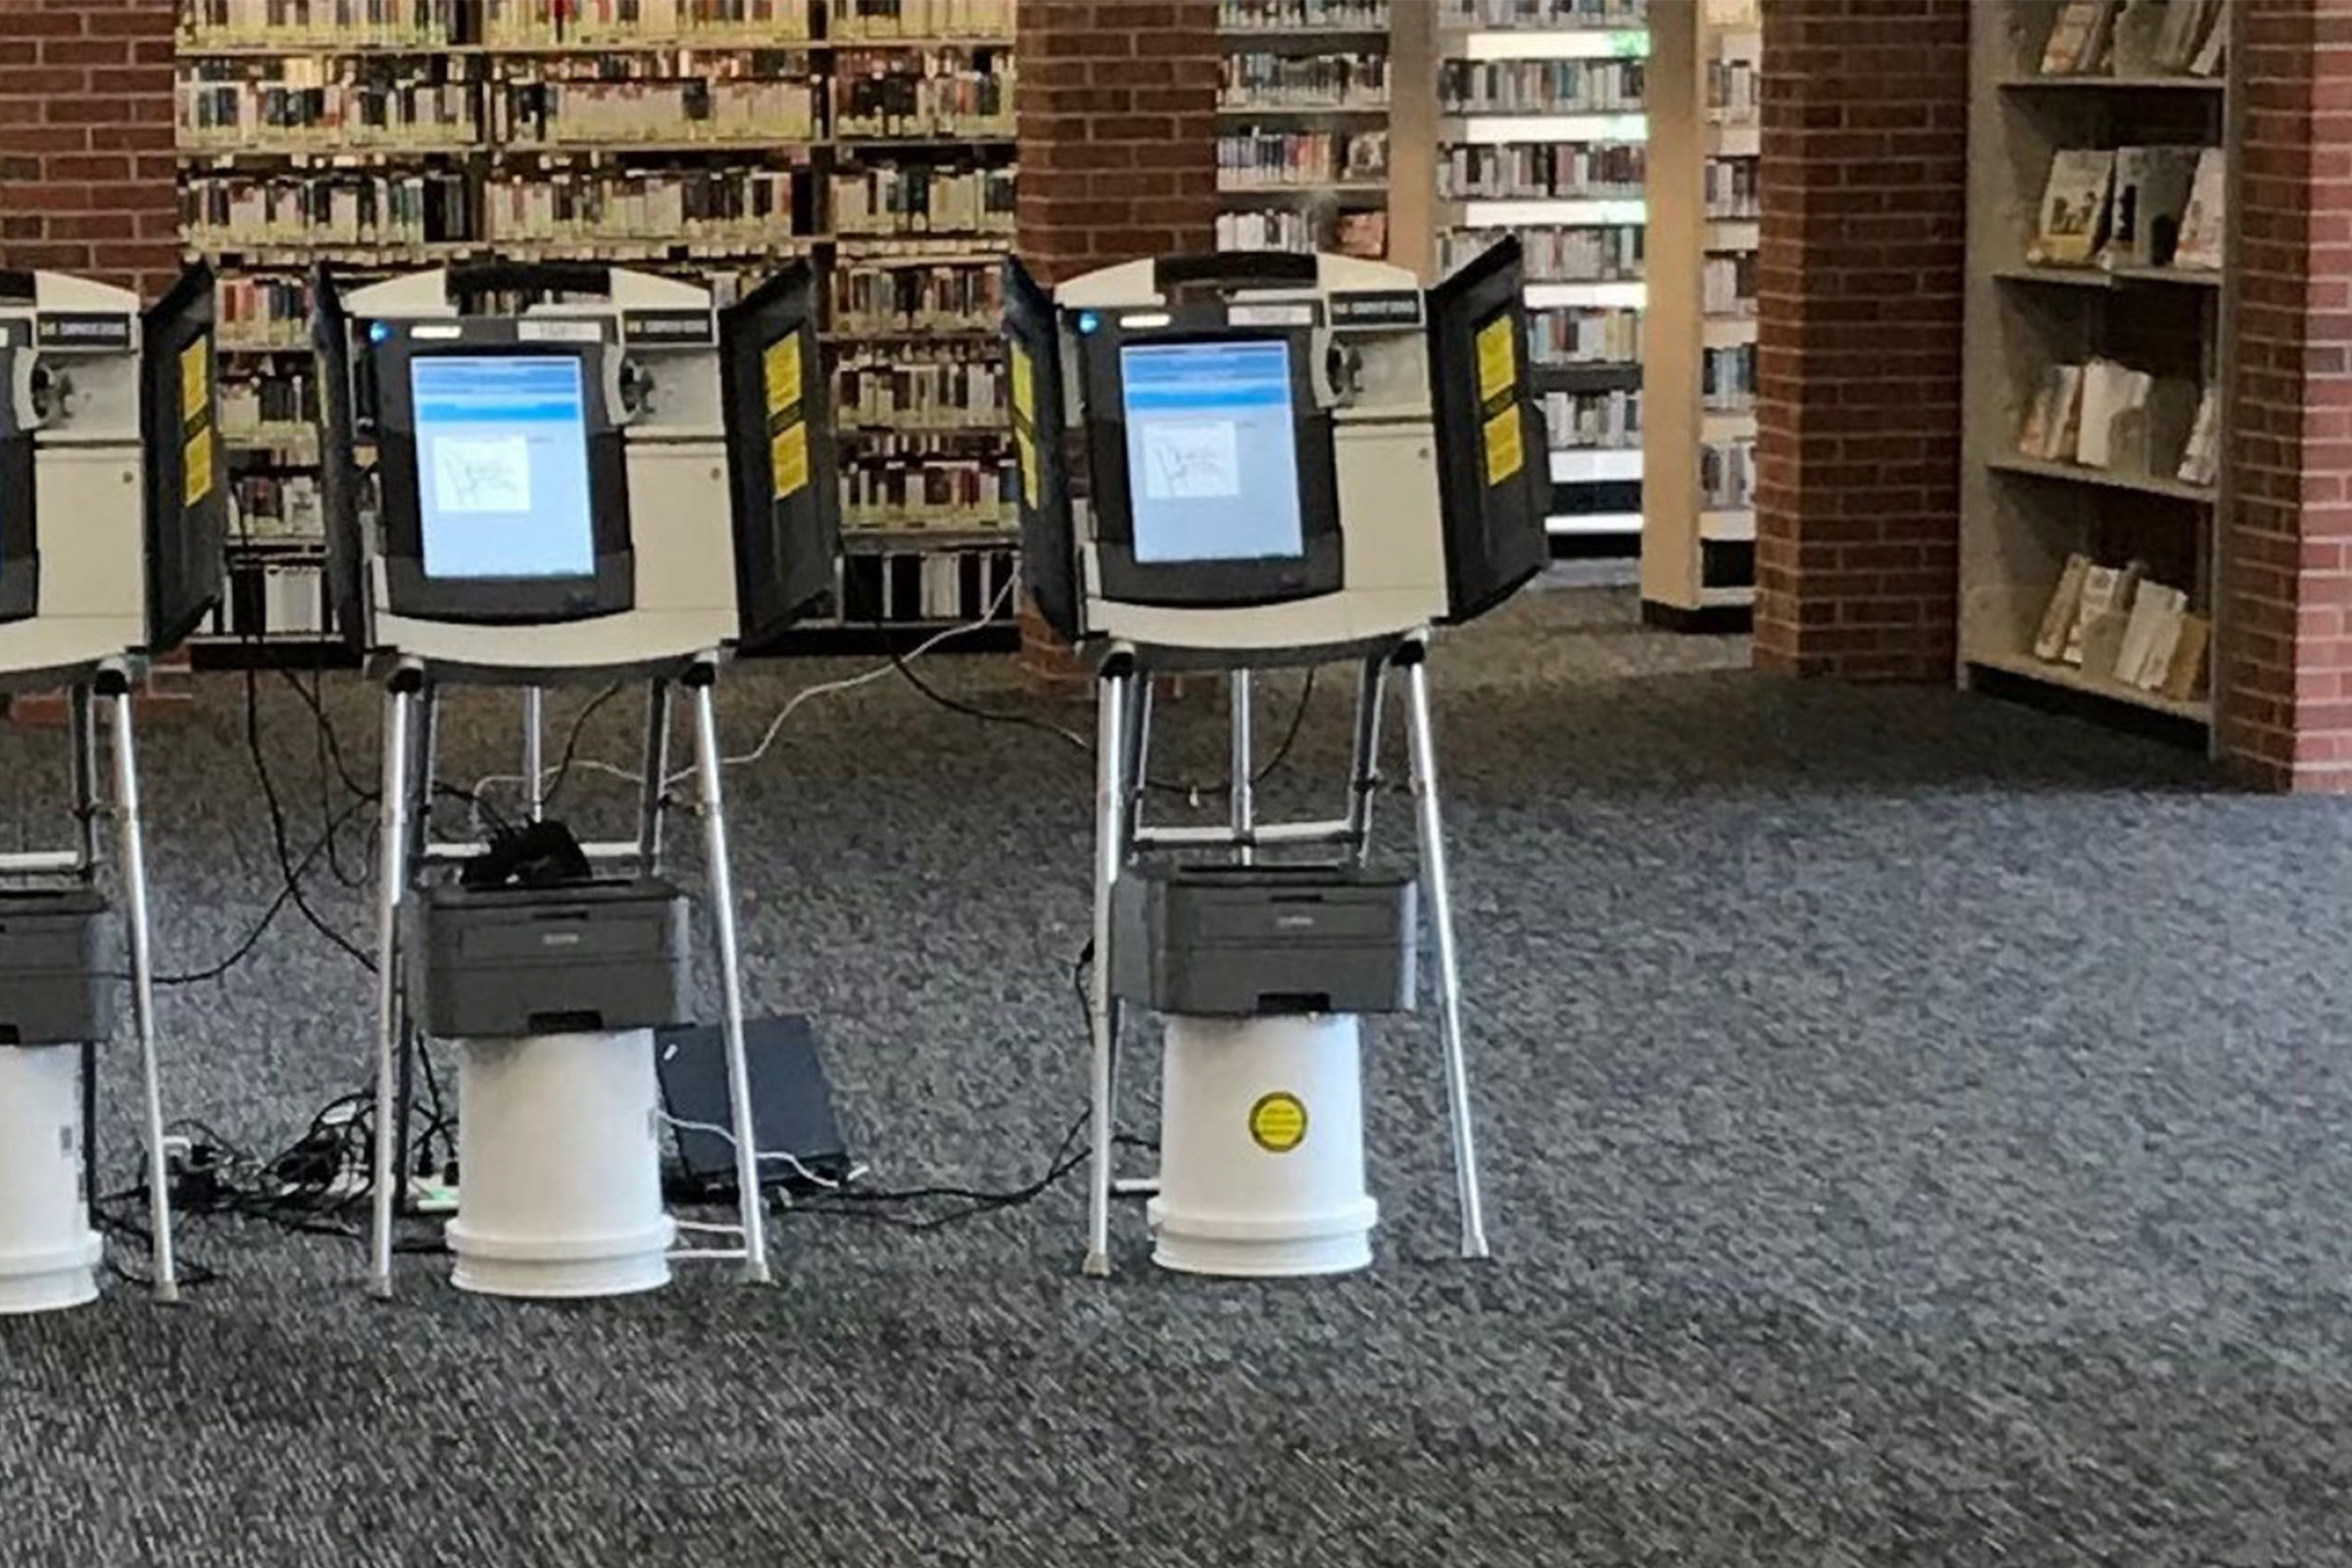 Voting machines at library